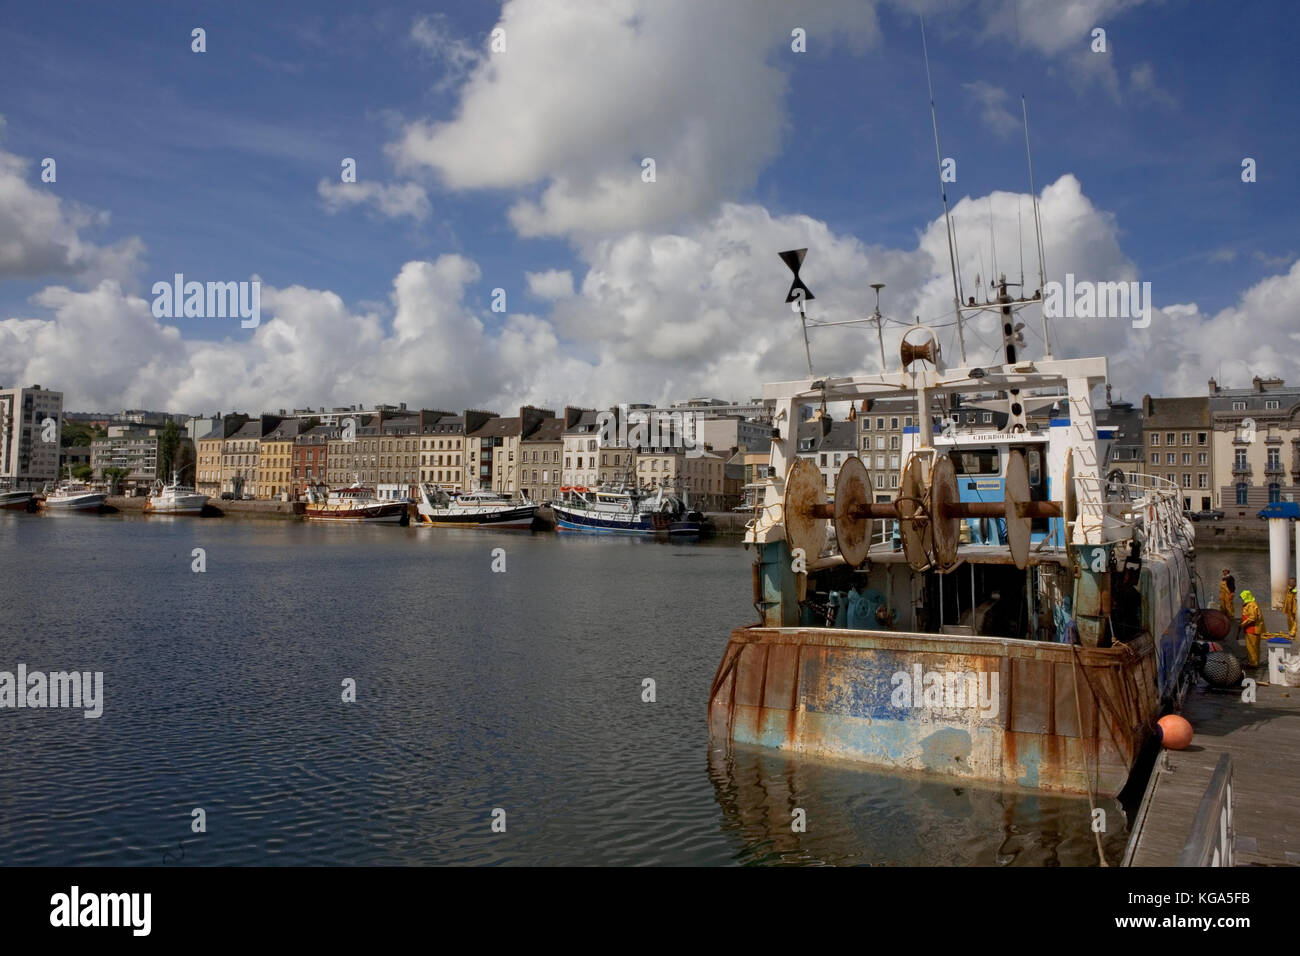 Cherbourg harbour stock photos cherbourg harbour stock images alamy - Chambre du commerce cherbourg ...